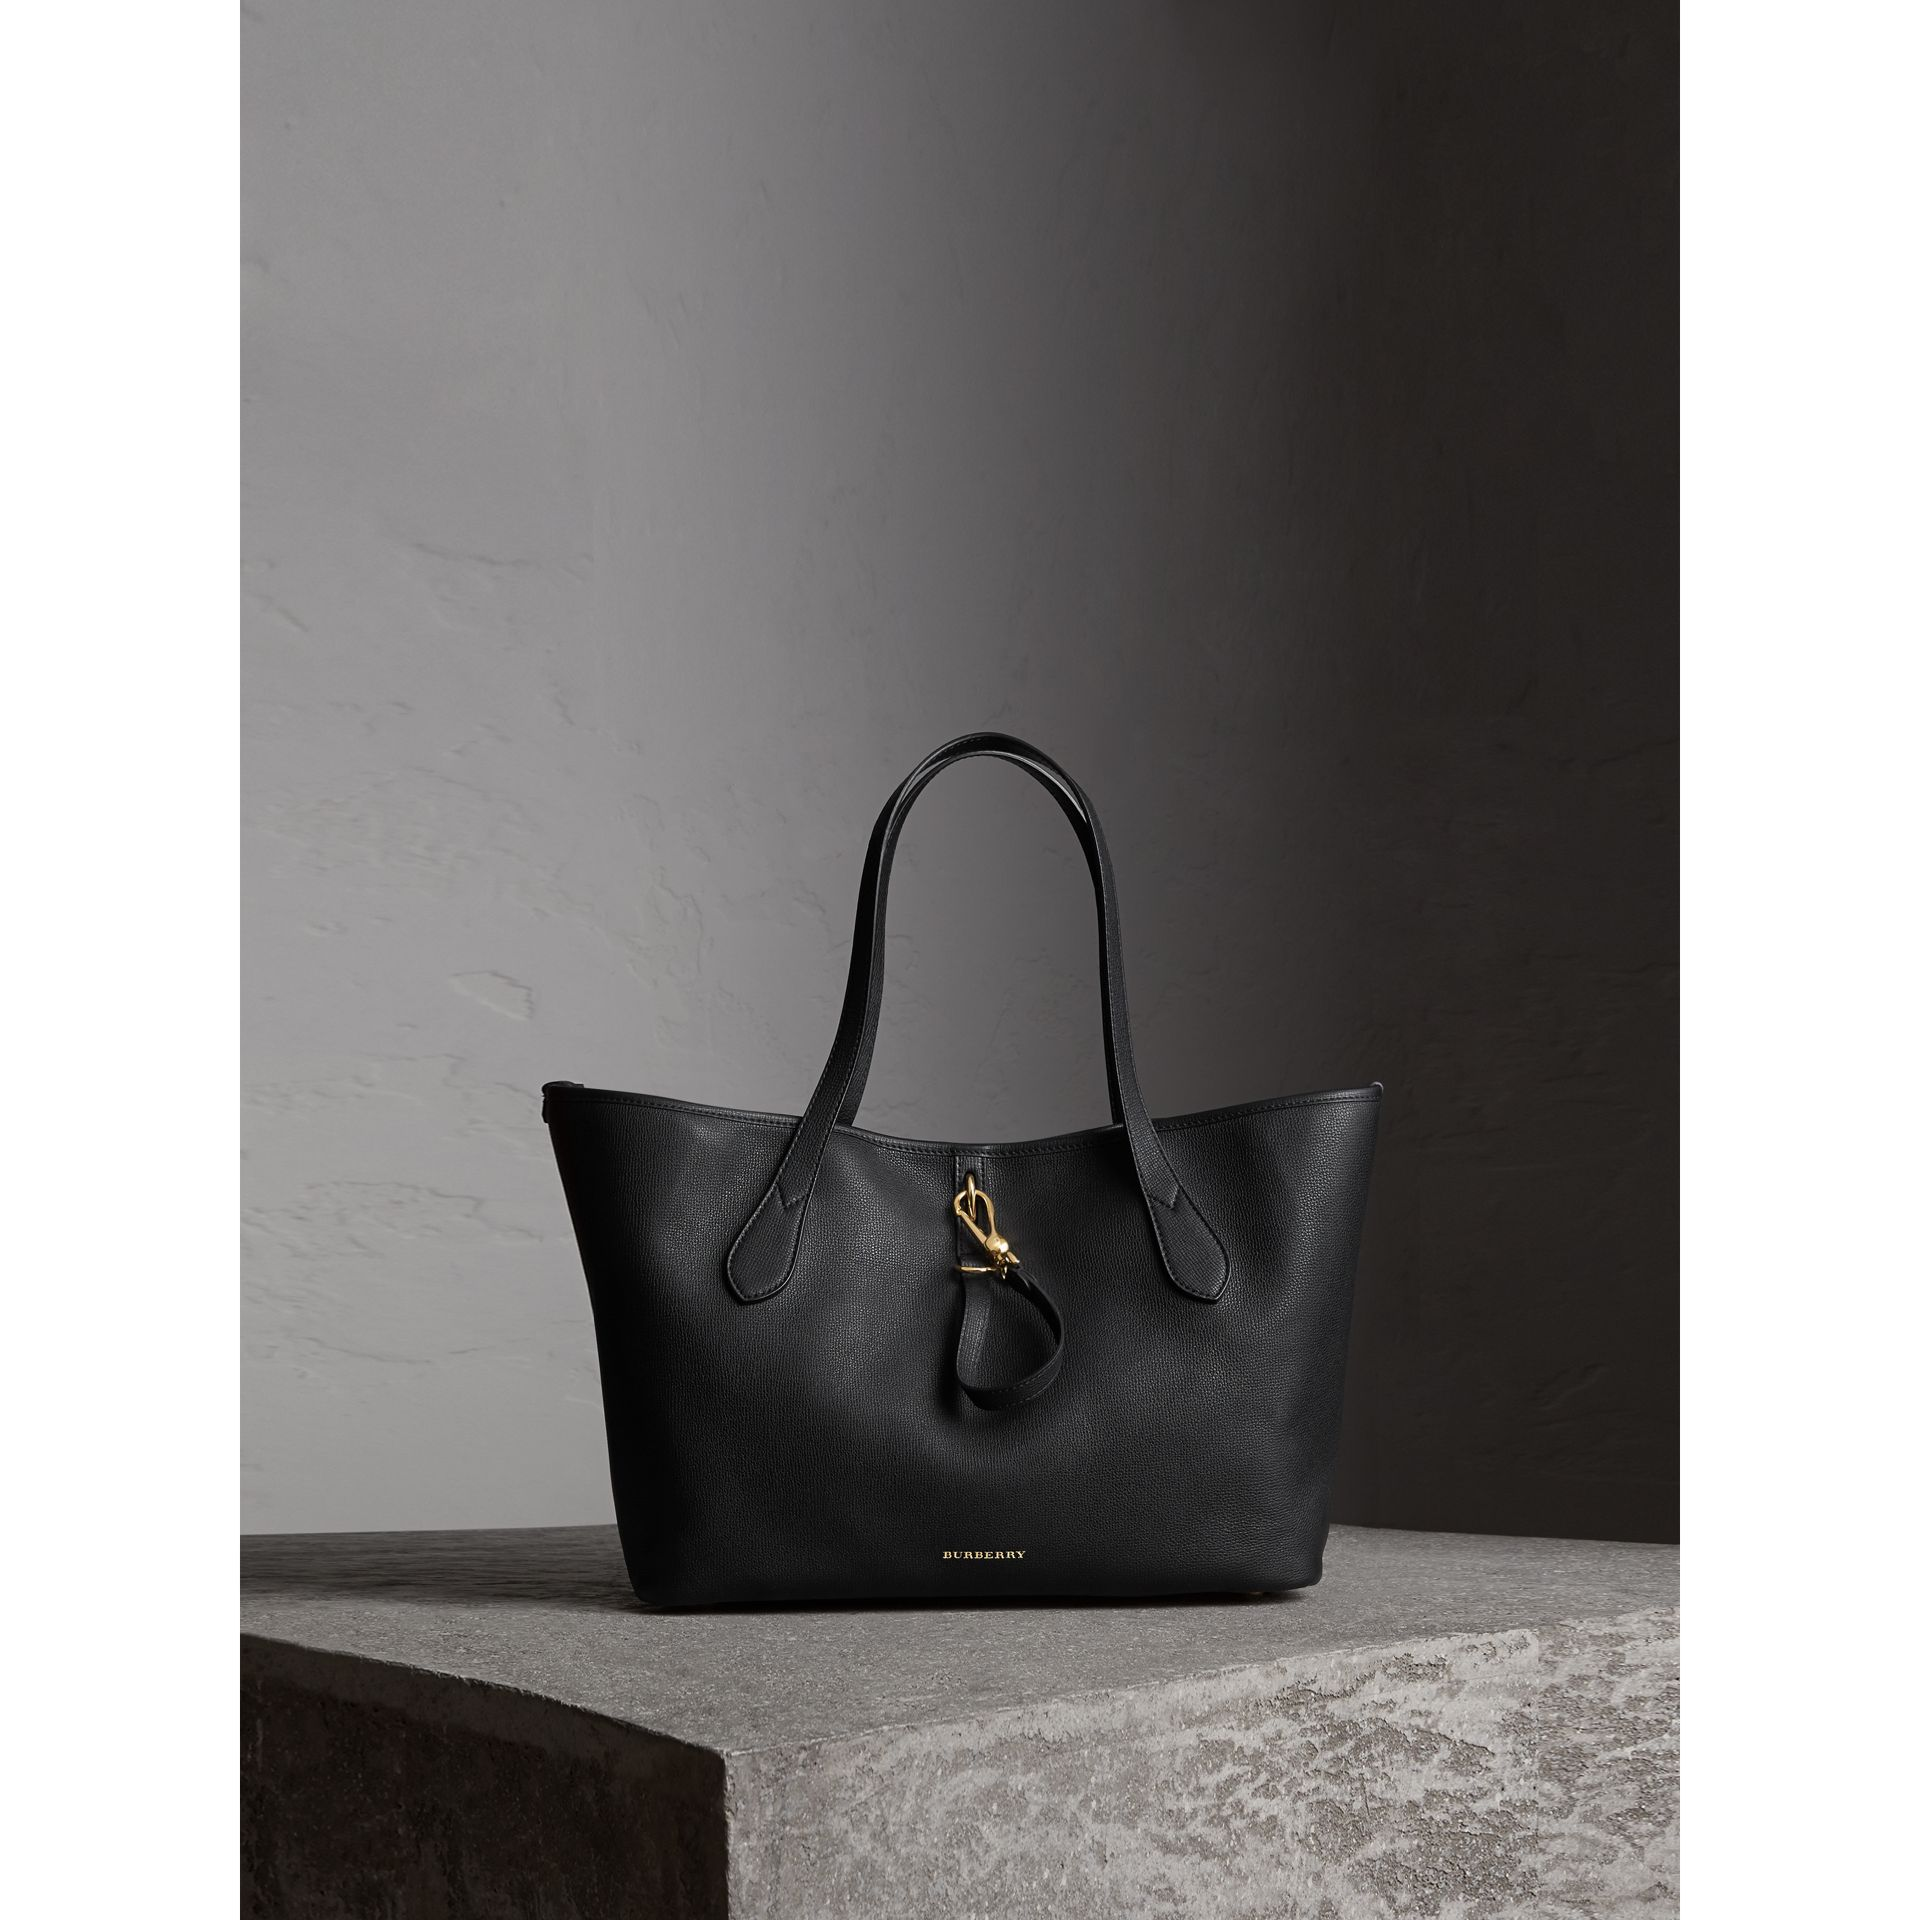 Medium Grainy Leather Tote Bag in Black - Women | Burberry United States - gallery image 1